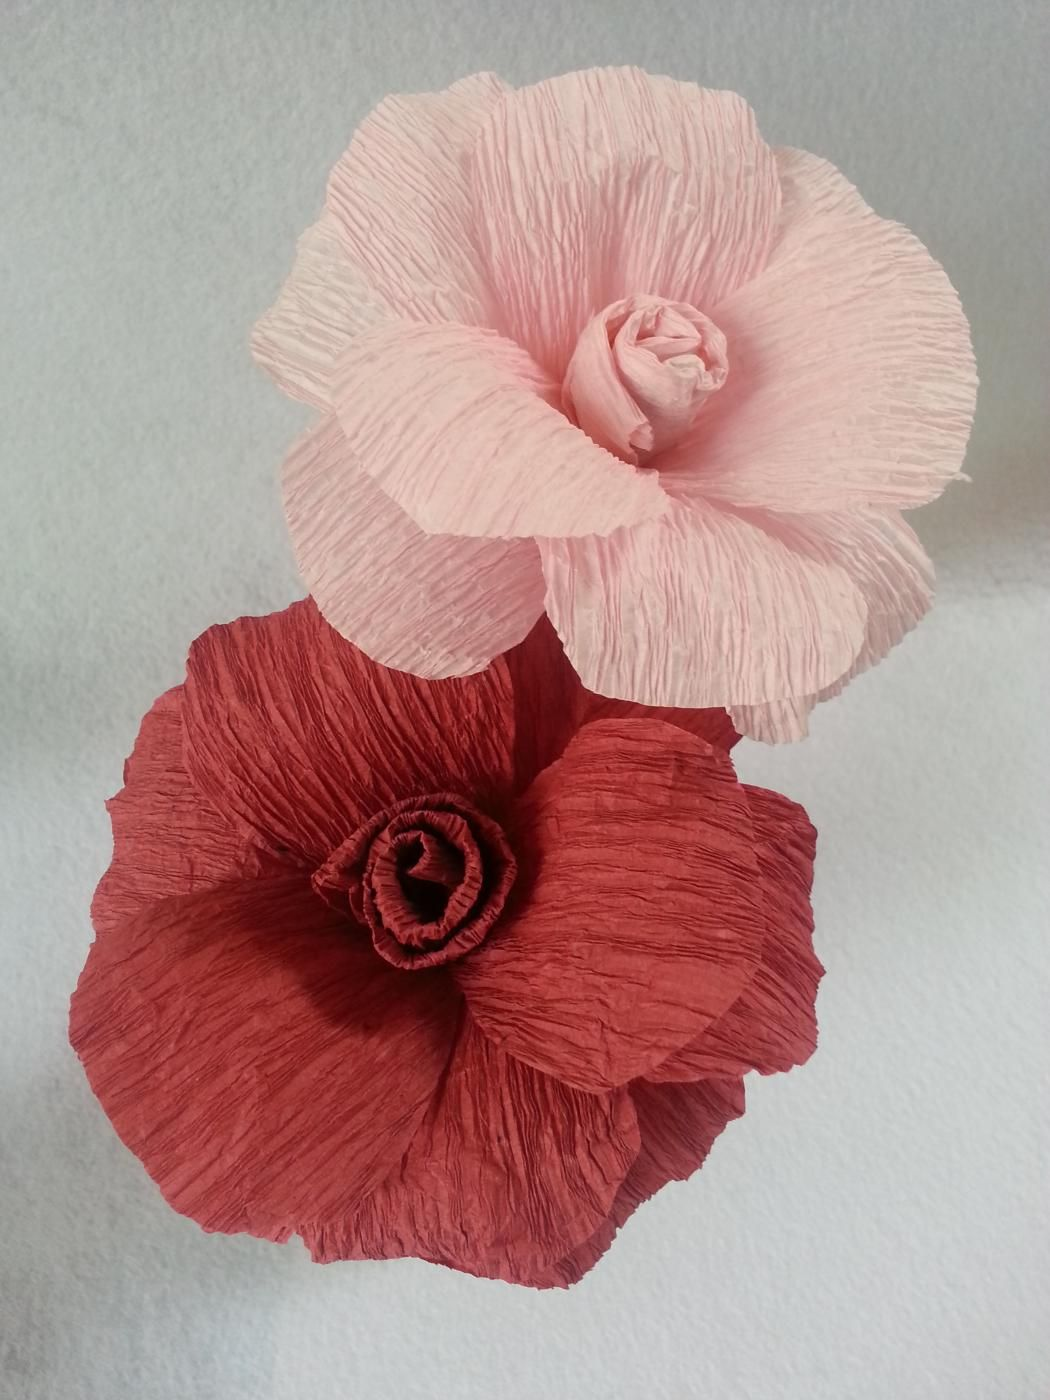 How to make crepe paper flowers streamers flower and crepe paper learn how to make this easy rose flower using crepe paper streamers you can get mightylinksfo